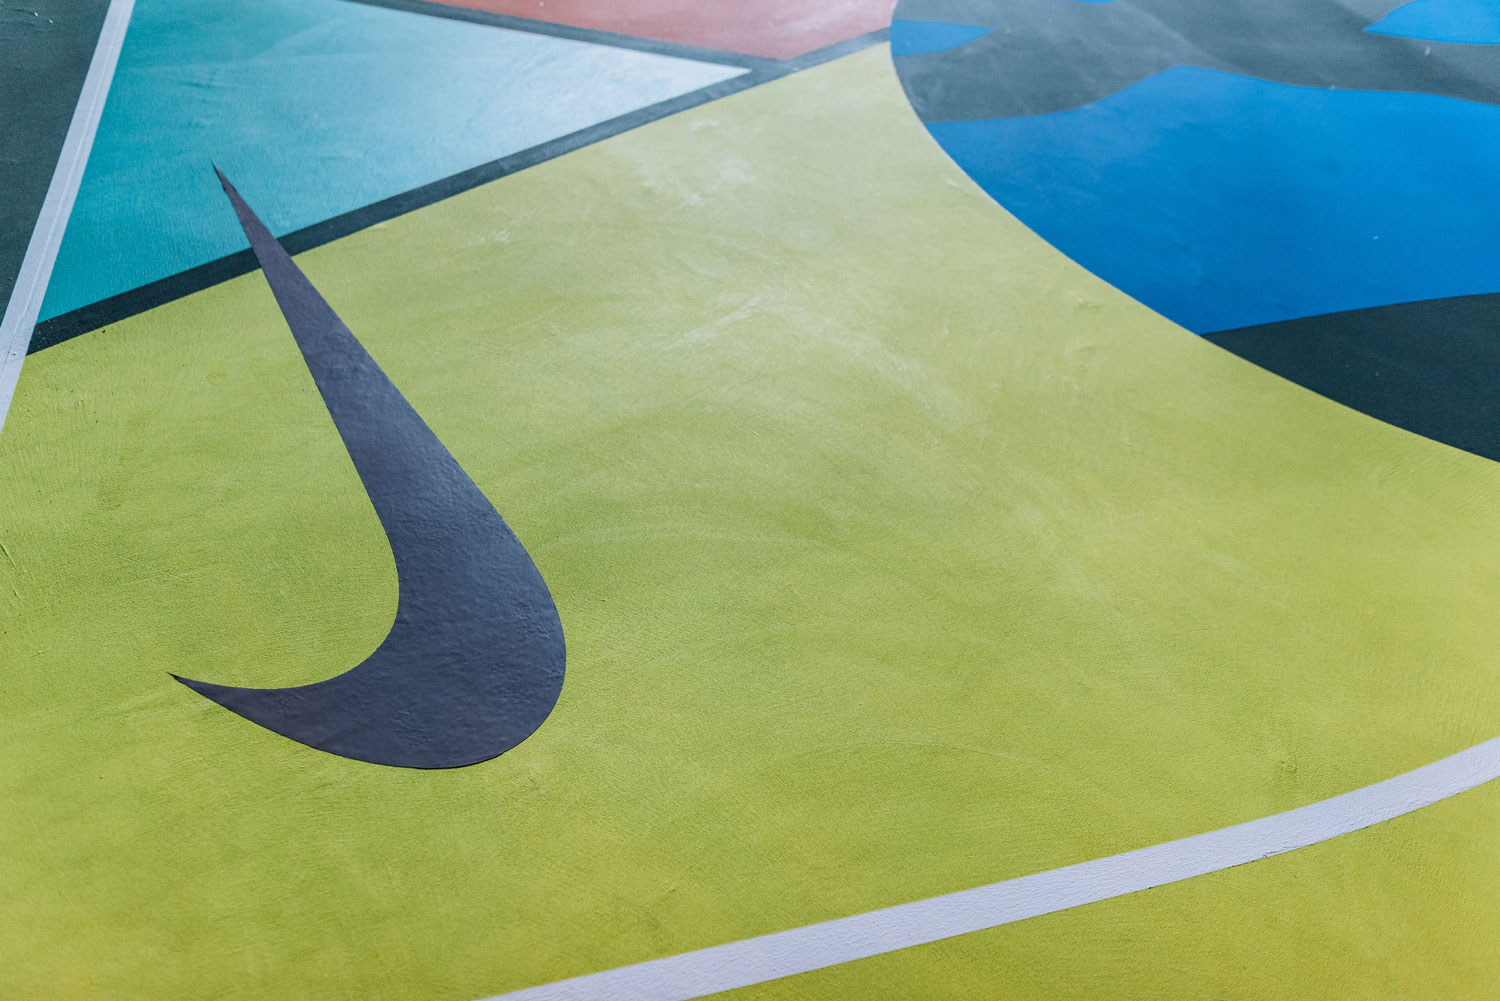 New York Basketball Courts by Kaws | Yellowtrace